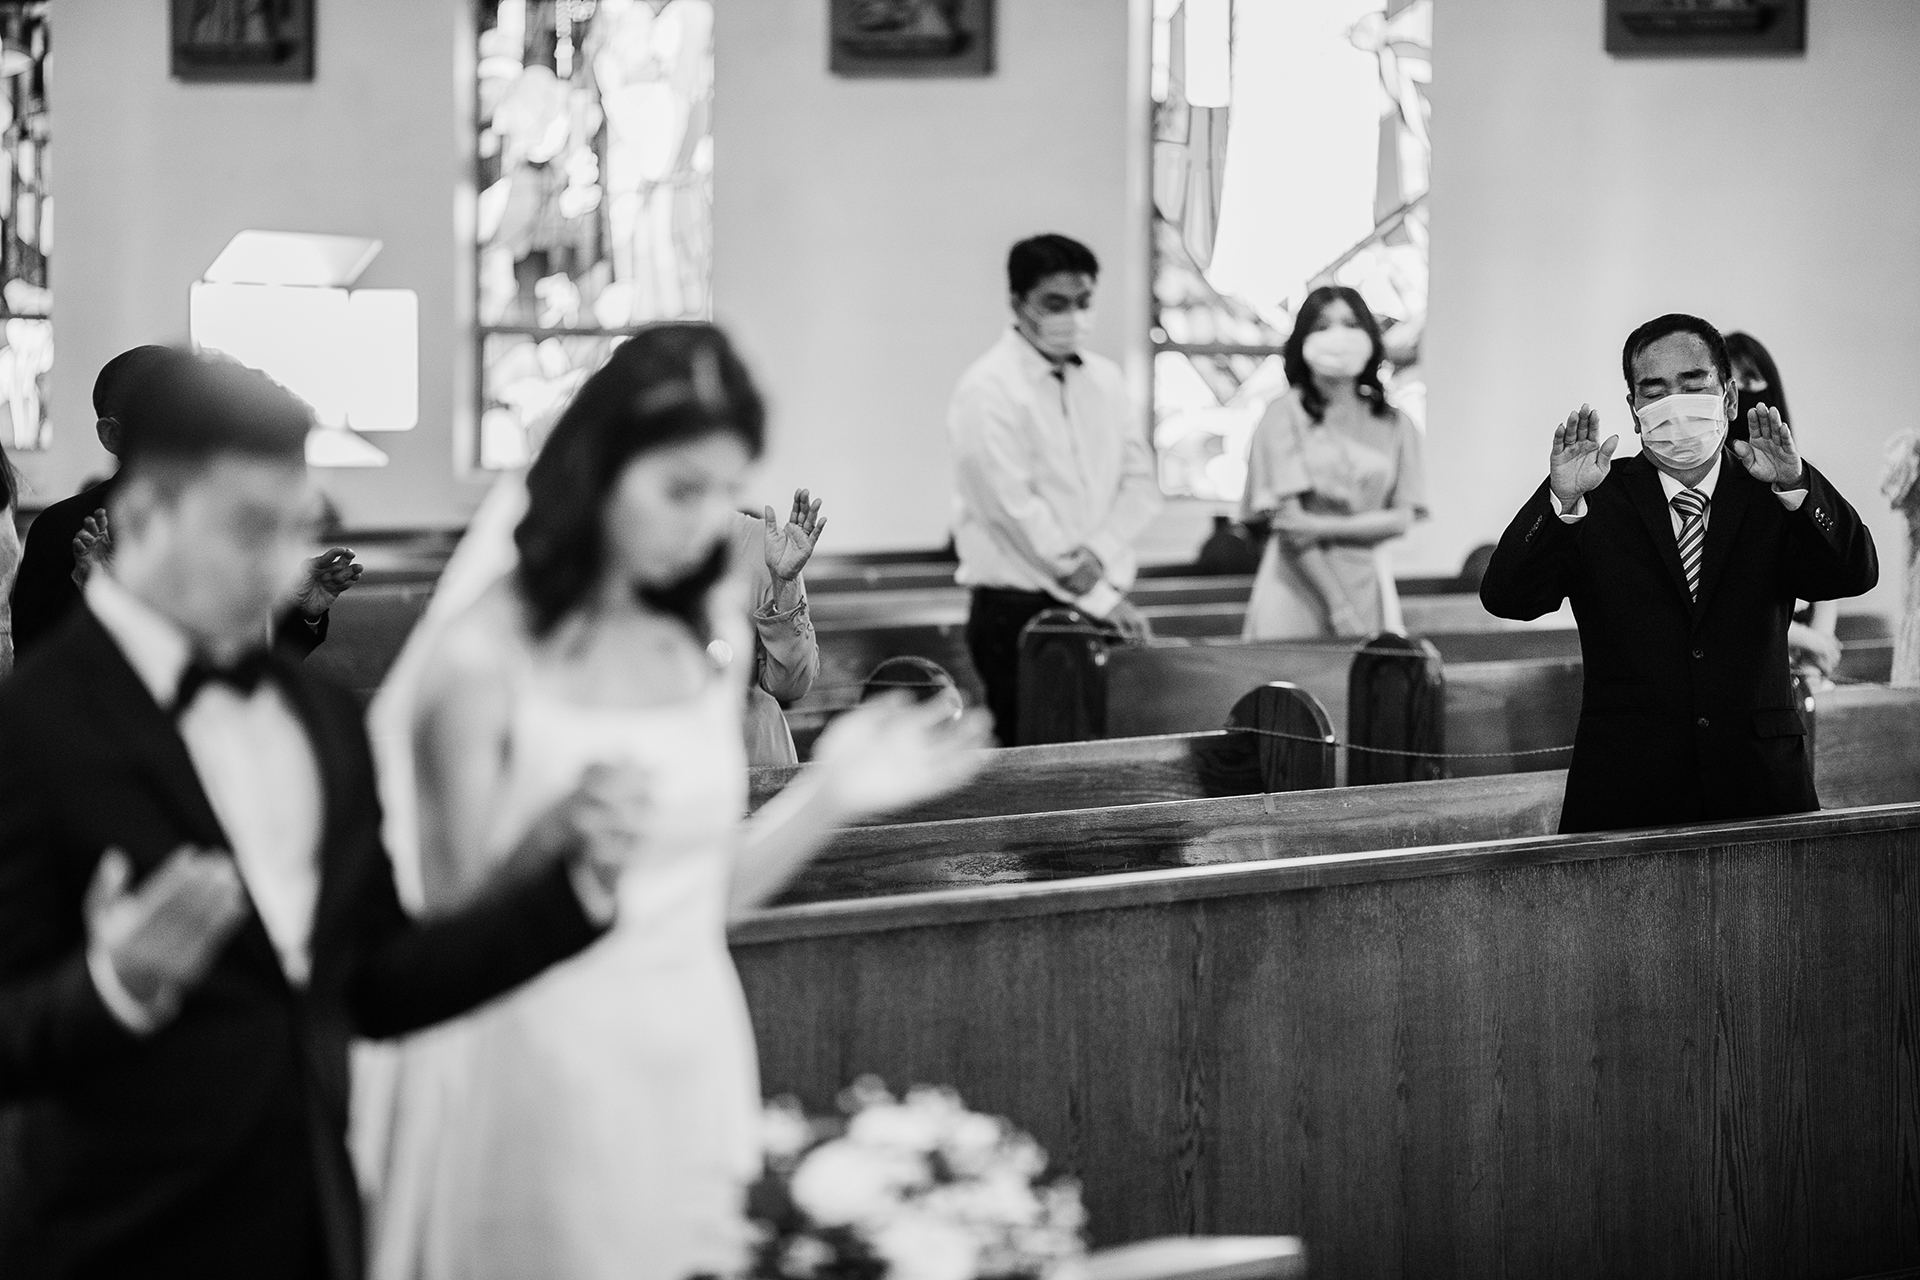 San Jose micro ceremony photography | Wearing masks and social distancing inside the church